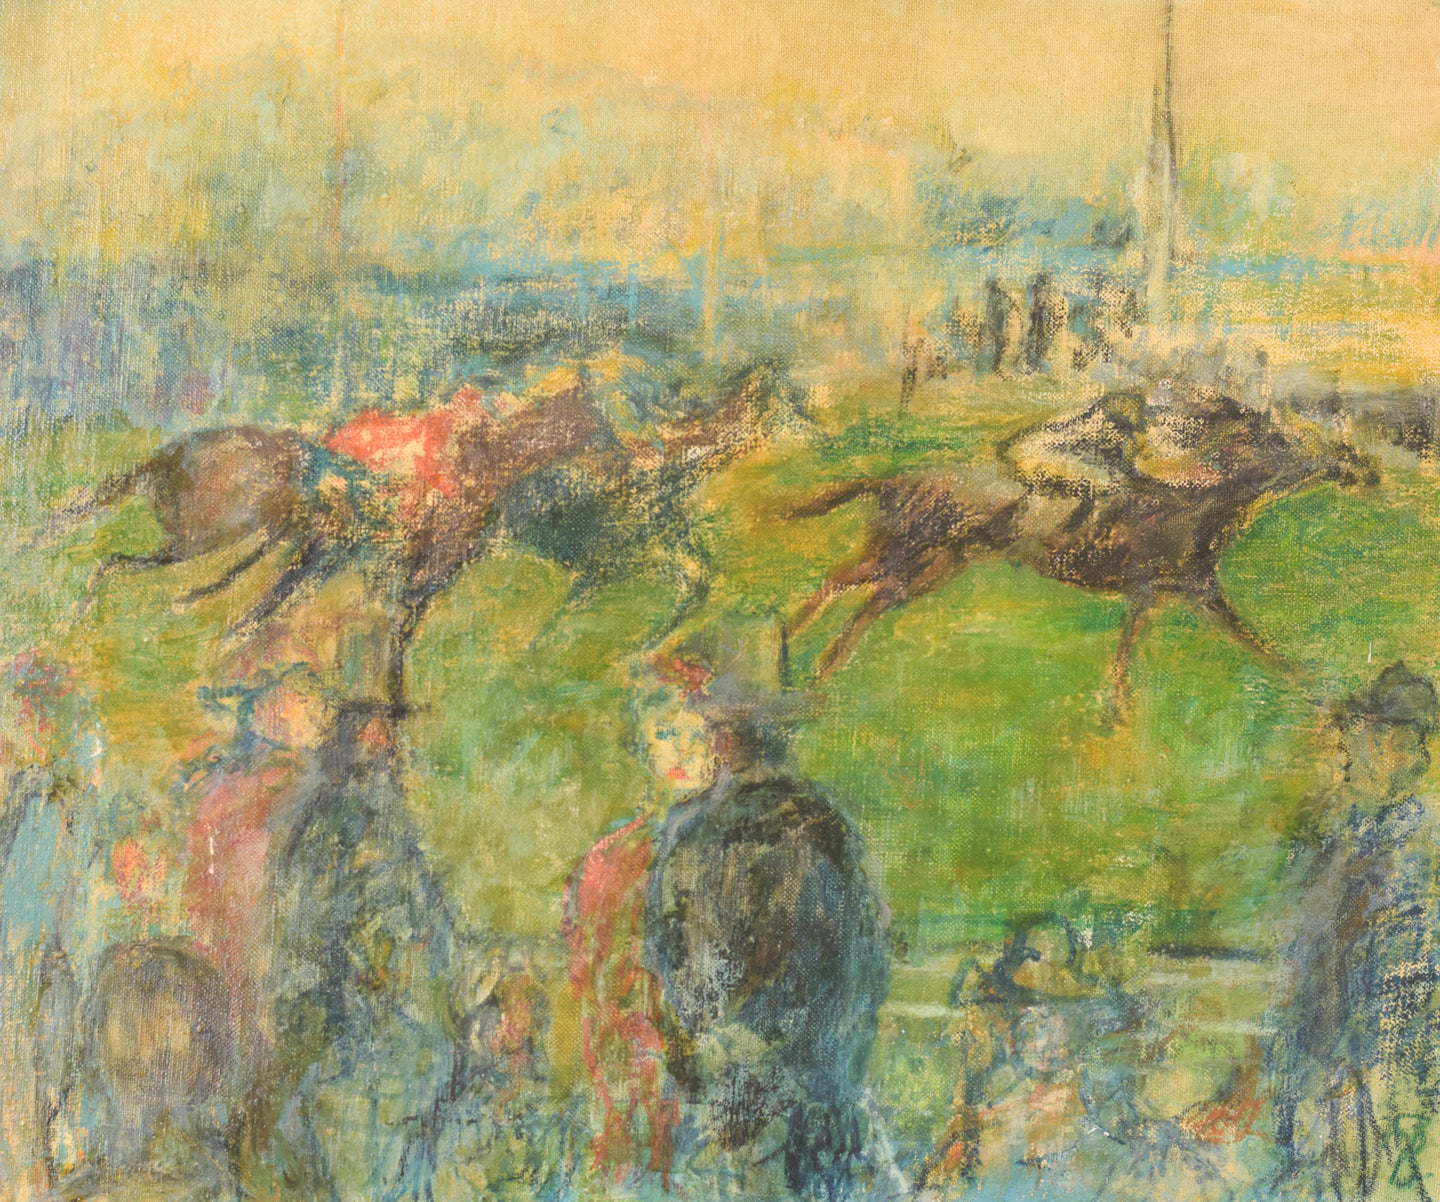 'A Day at the Races' Oil on canvas